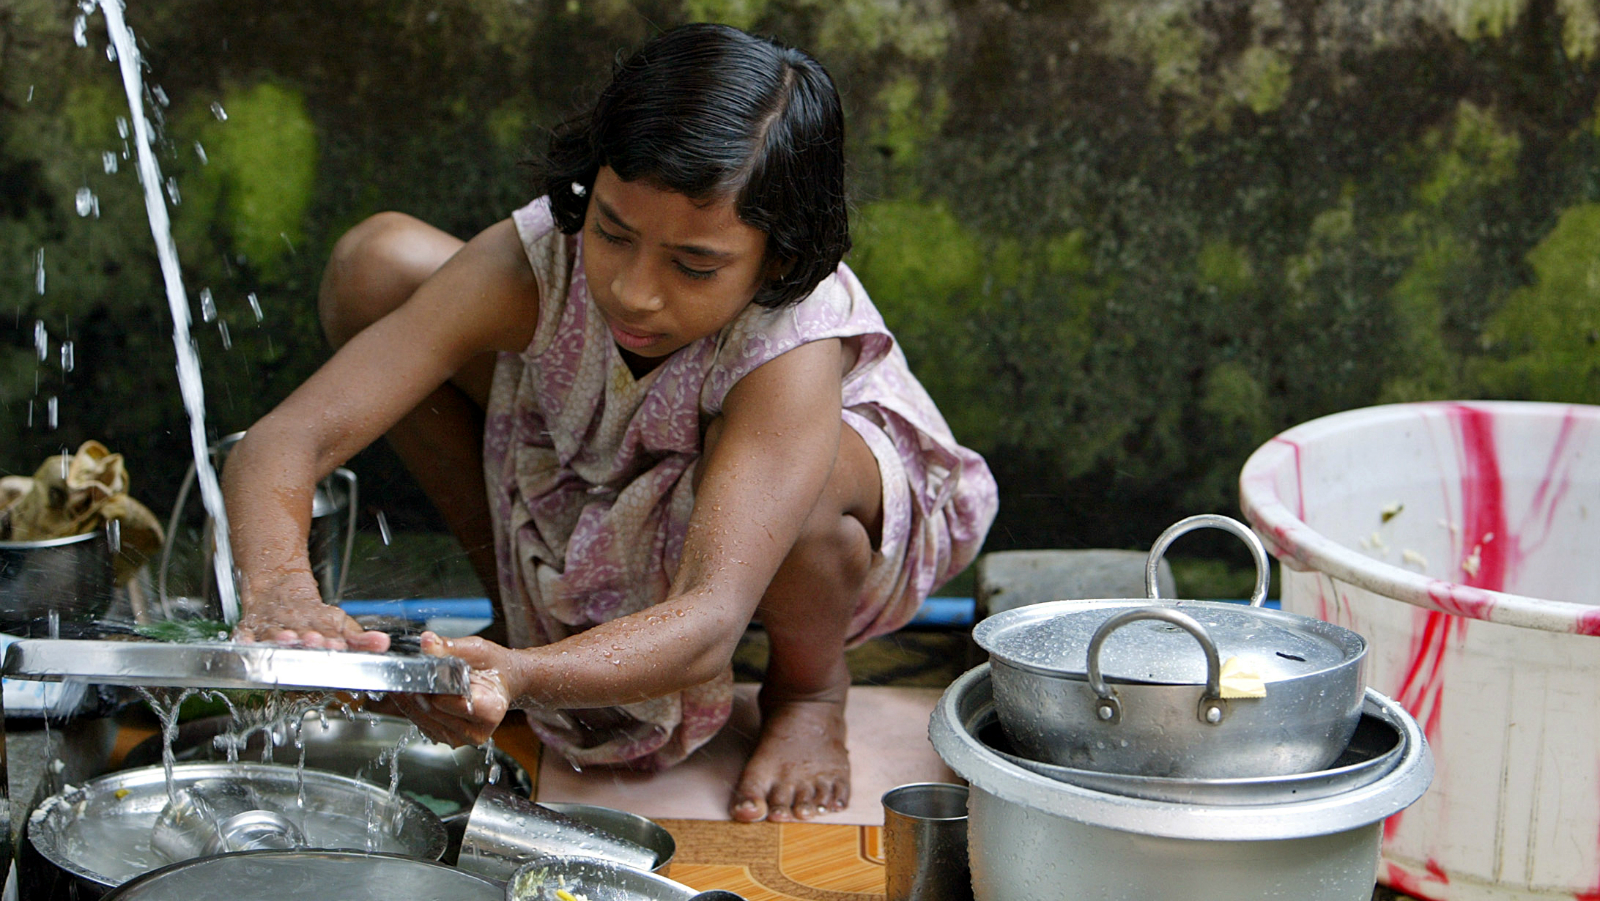 Sumana Barman, 11, a child labourer washes utensils at a house in the northeastern Indian city of Siliguri October 13, 2006.